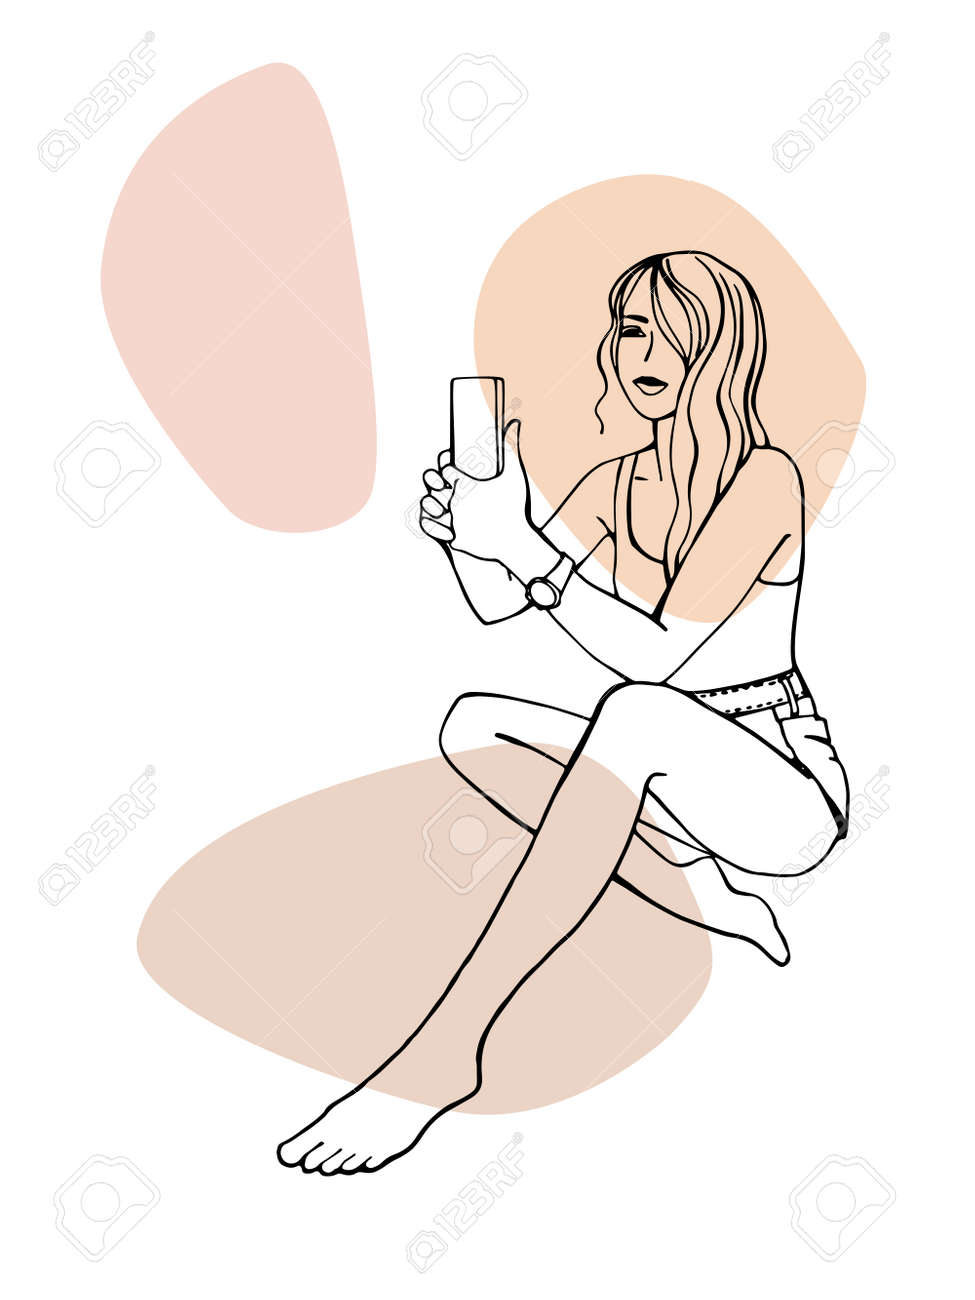 Pretty girl on the beach takes pictures by phone. Hand drawn line sketch. Ink drawing. Isolated on white background. Trendy colors blobs. - 170750914